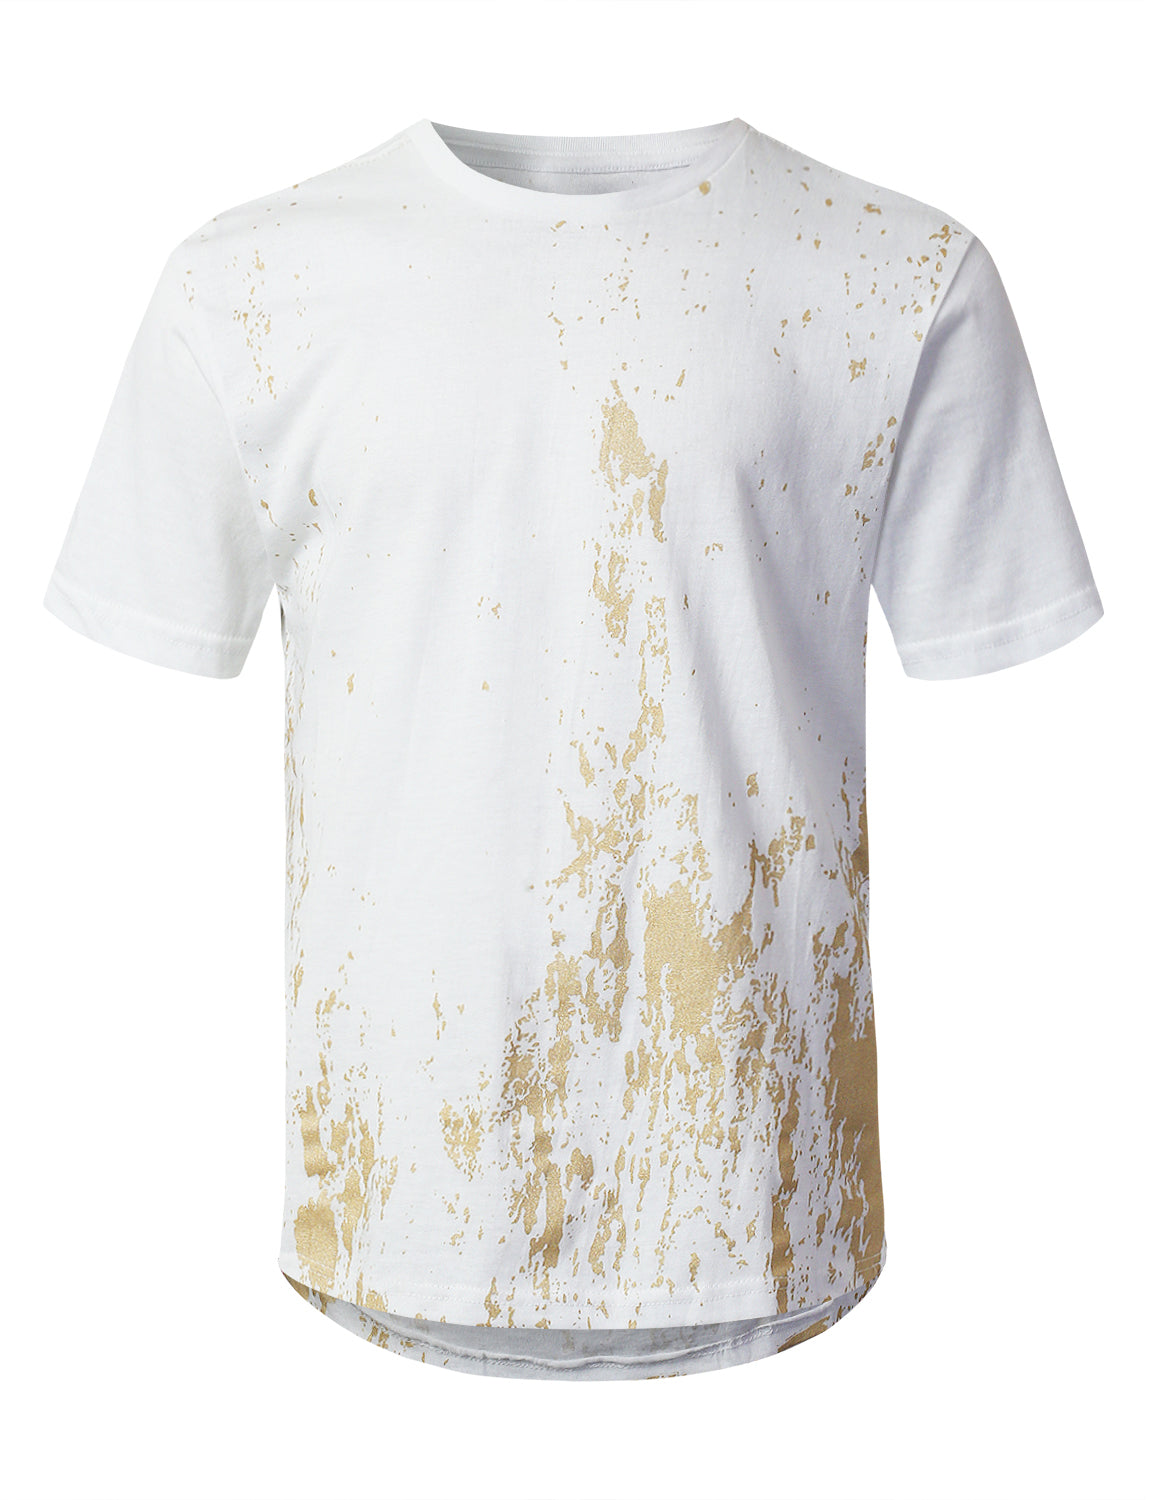 WHITE Gold Grunge Printed T-shirt - URBANCREWS